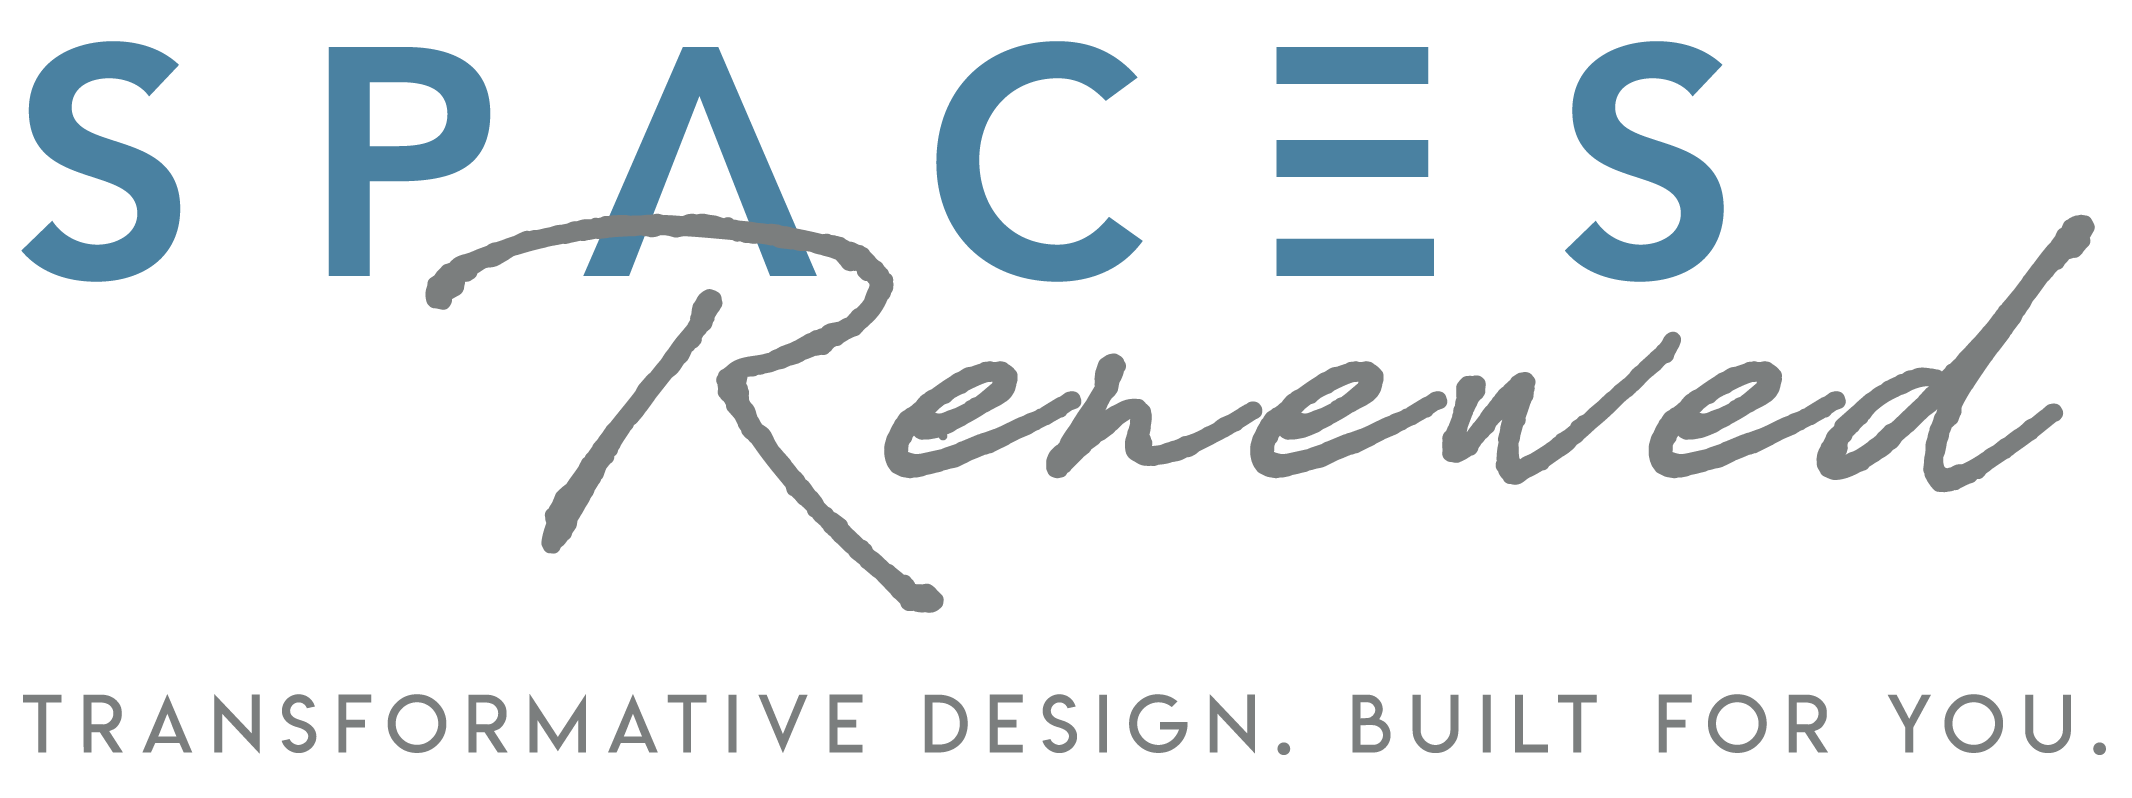 Spaces Renewed Donates Renovation Services For The Church Of Calvary Chapel Living Hope - Downtown Oceanside, California